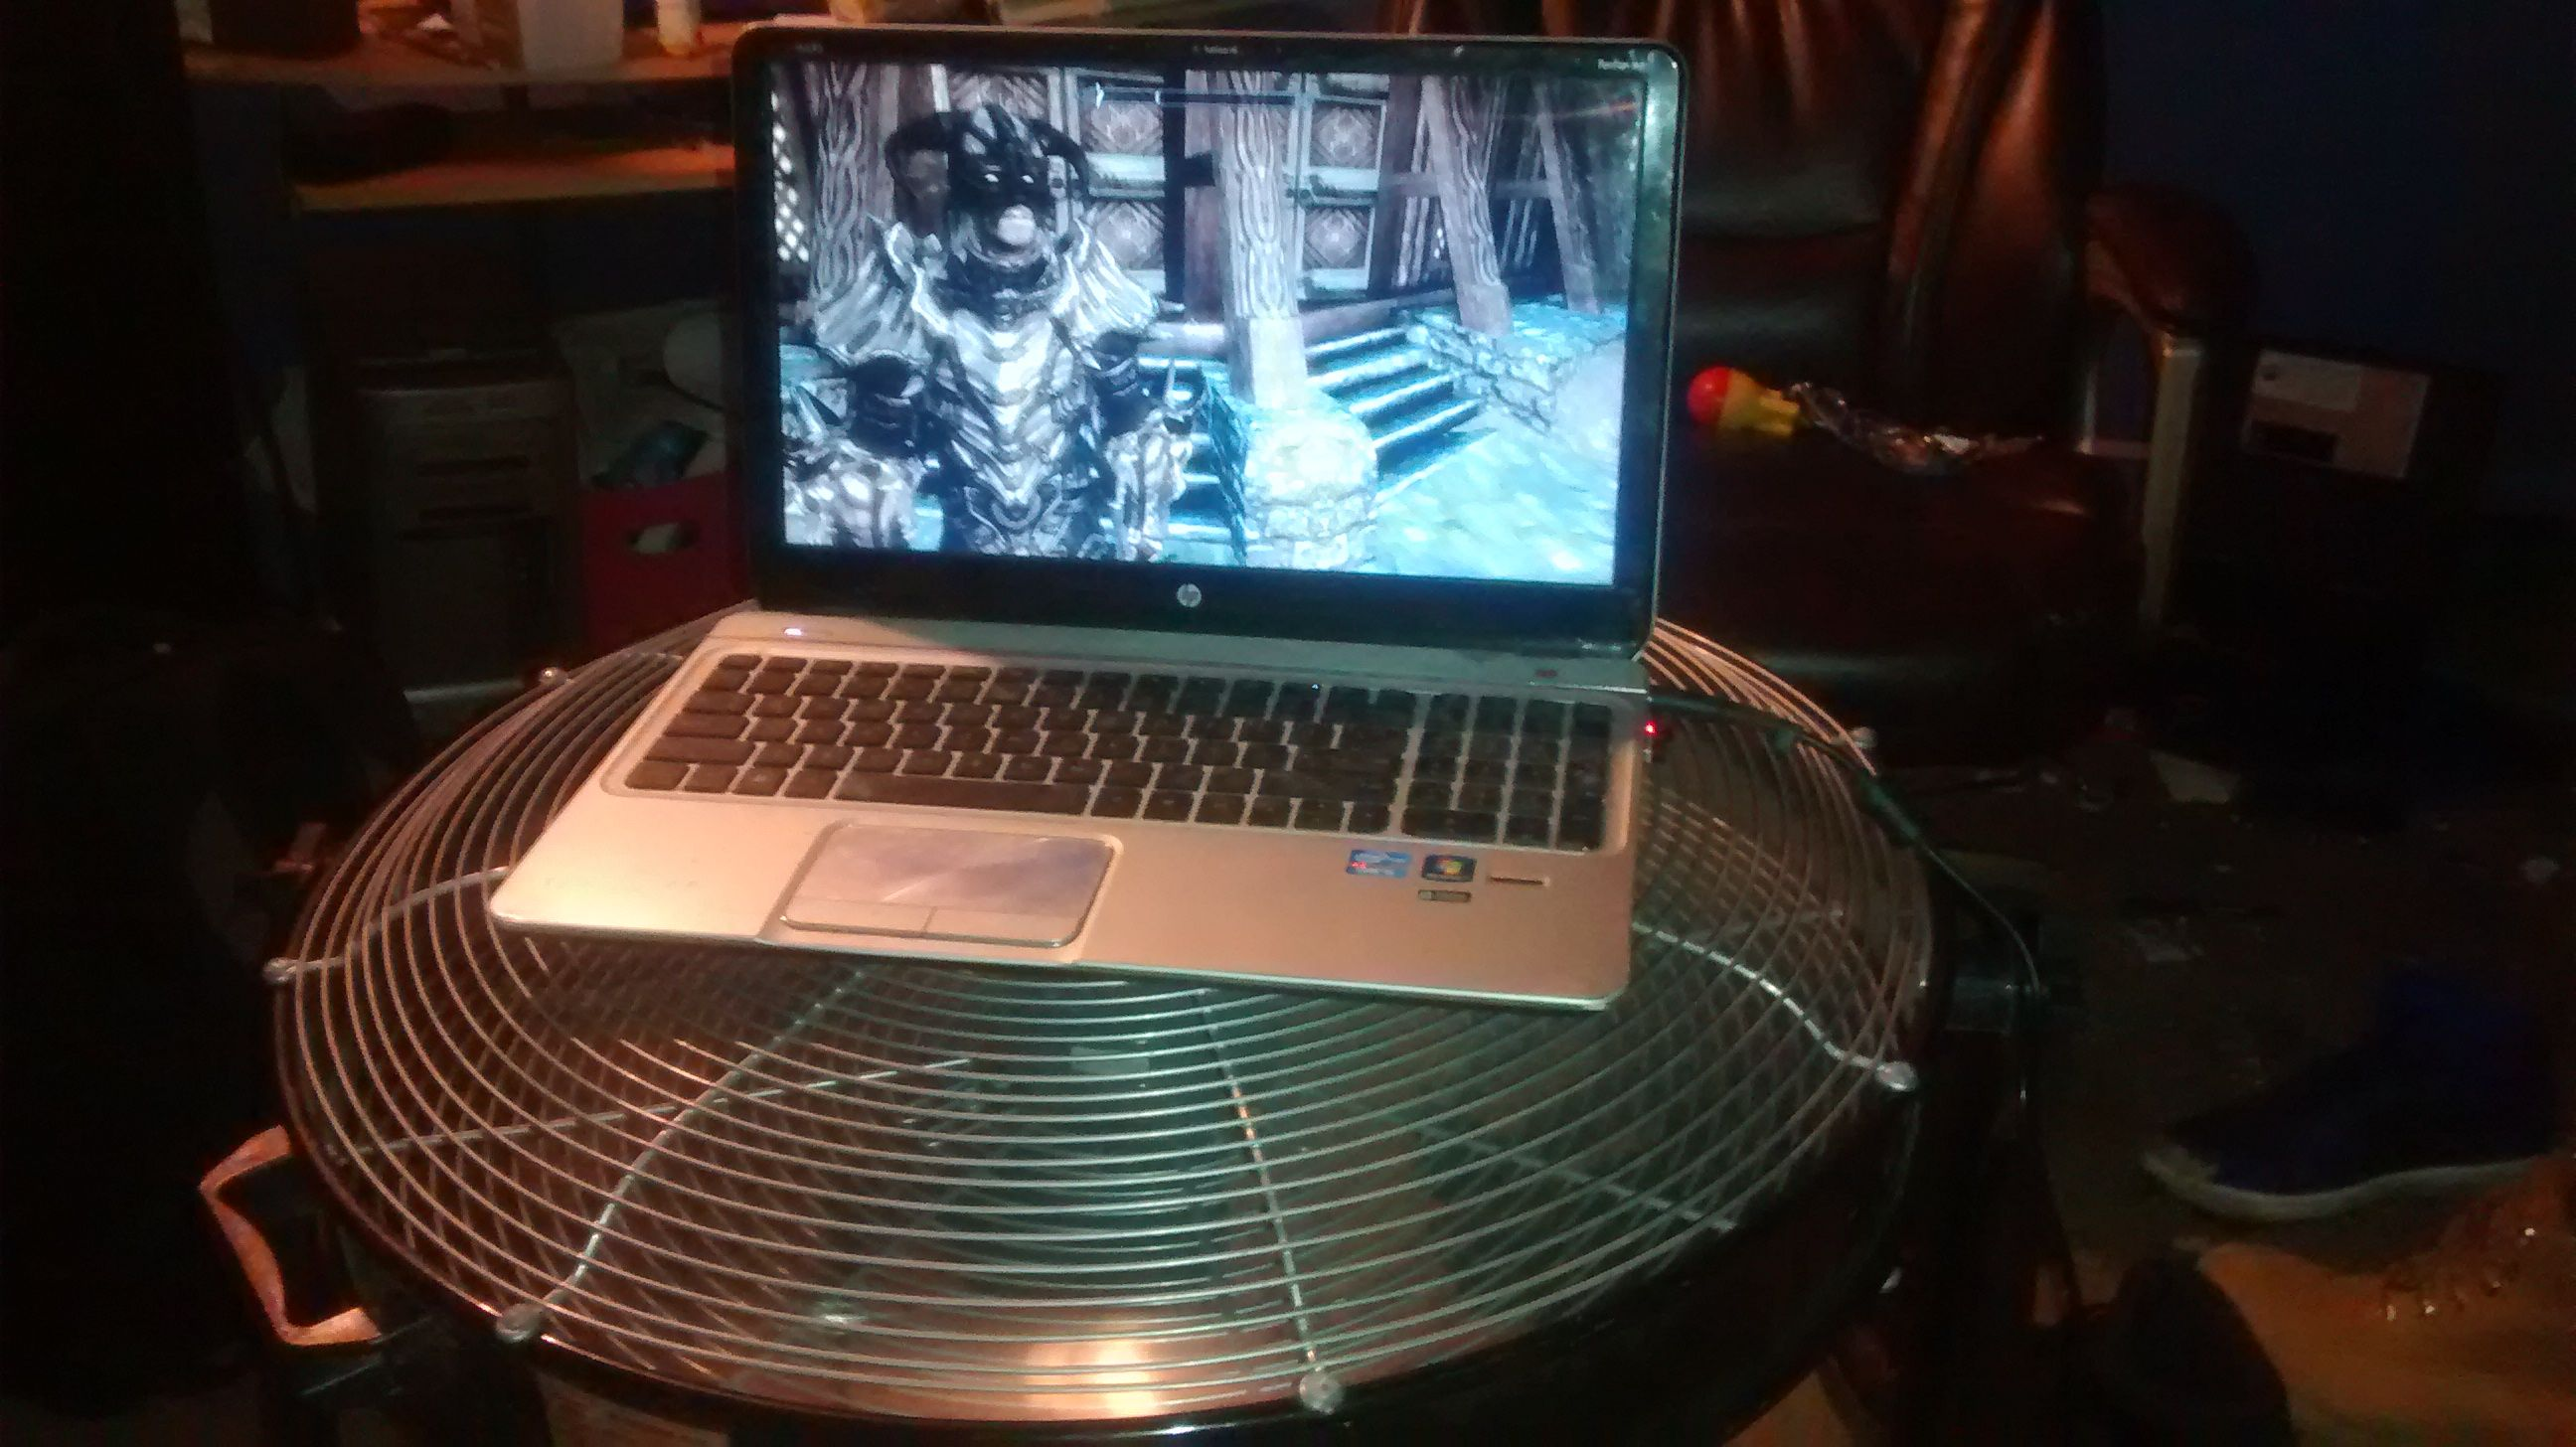 My Hi tech cooling for my laptop #games #Skyrim #elderscrolls #BE3 #gaming #videogames #Concours #NGC